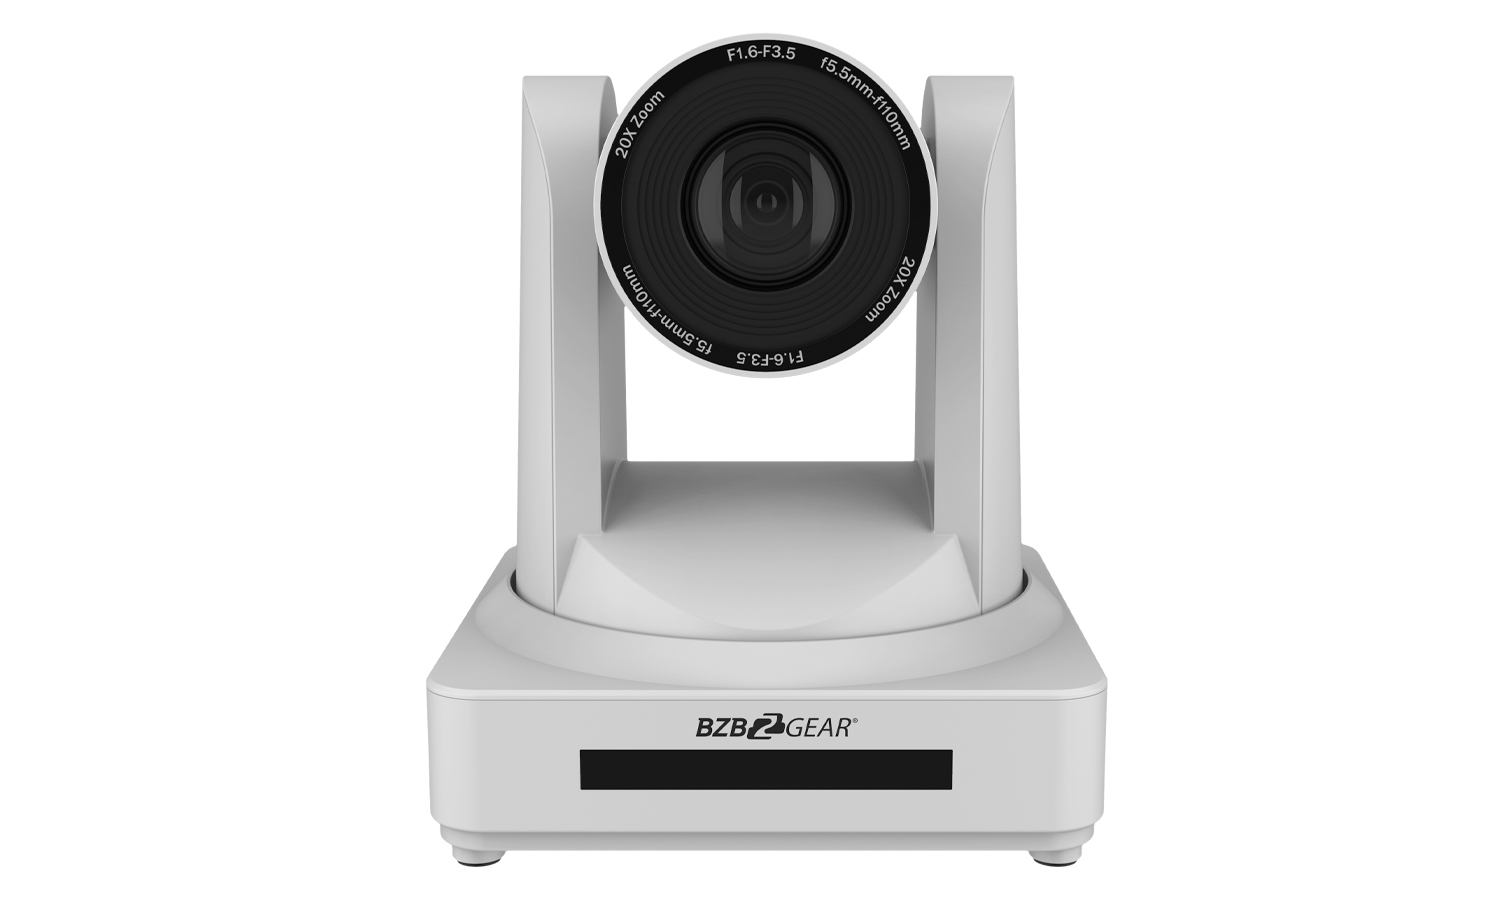 BG-LVPTZ-20XHSP-W PTZ 20X Zoom Full HD HDMI/SDI Live Streaming Camera with POE (White) by BZBGEAR